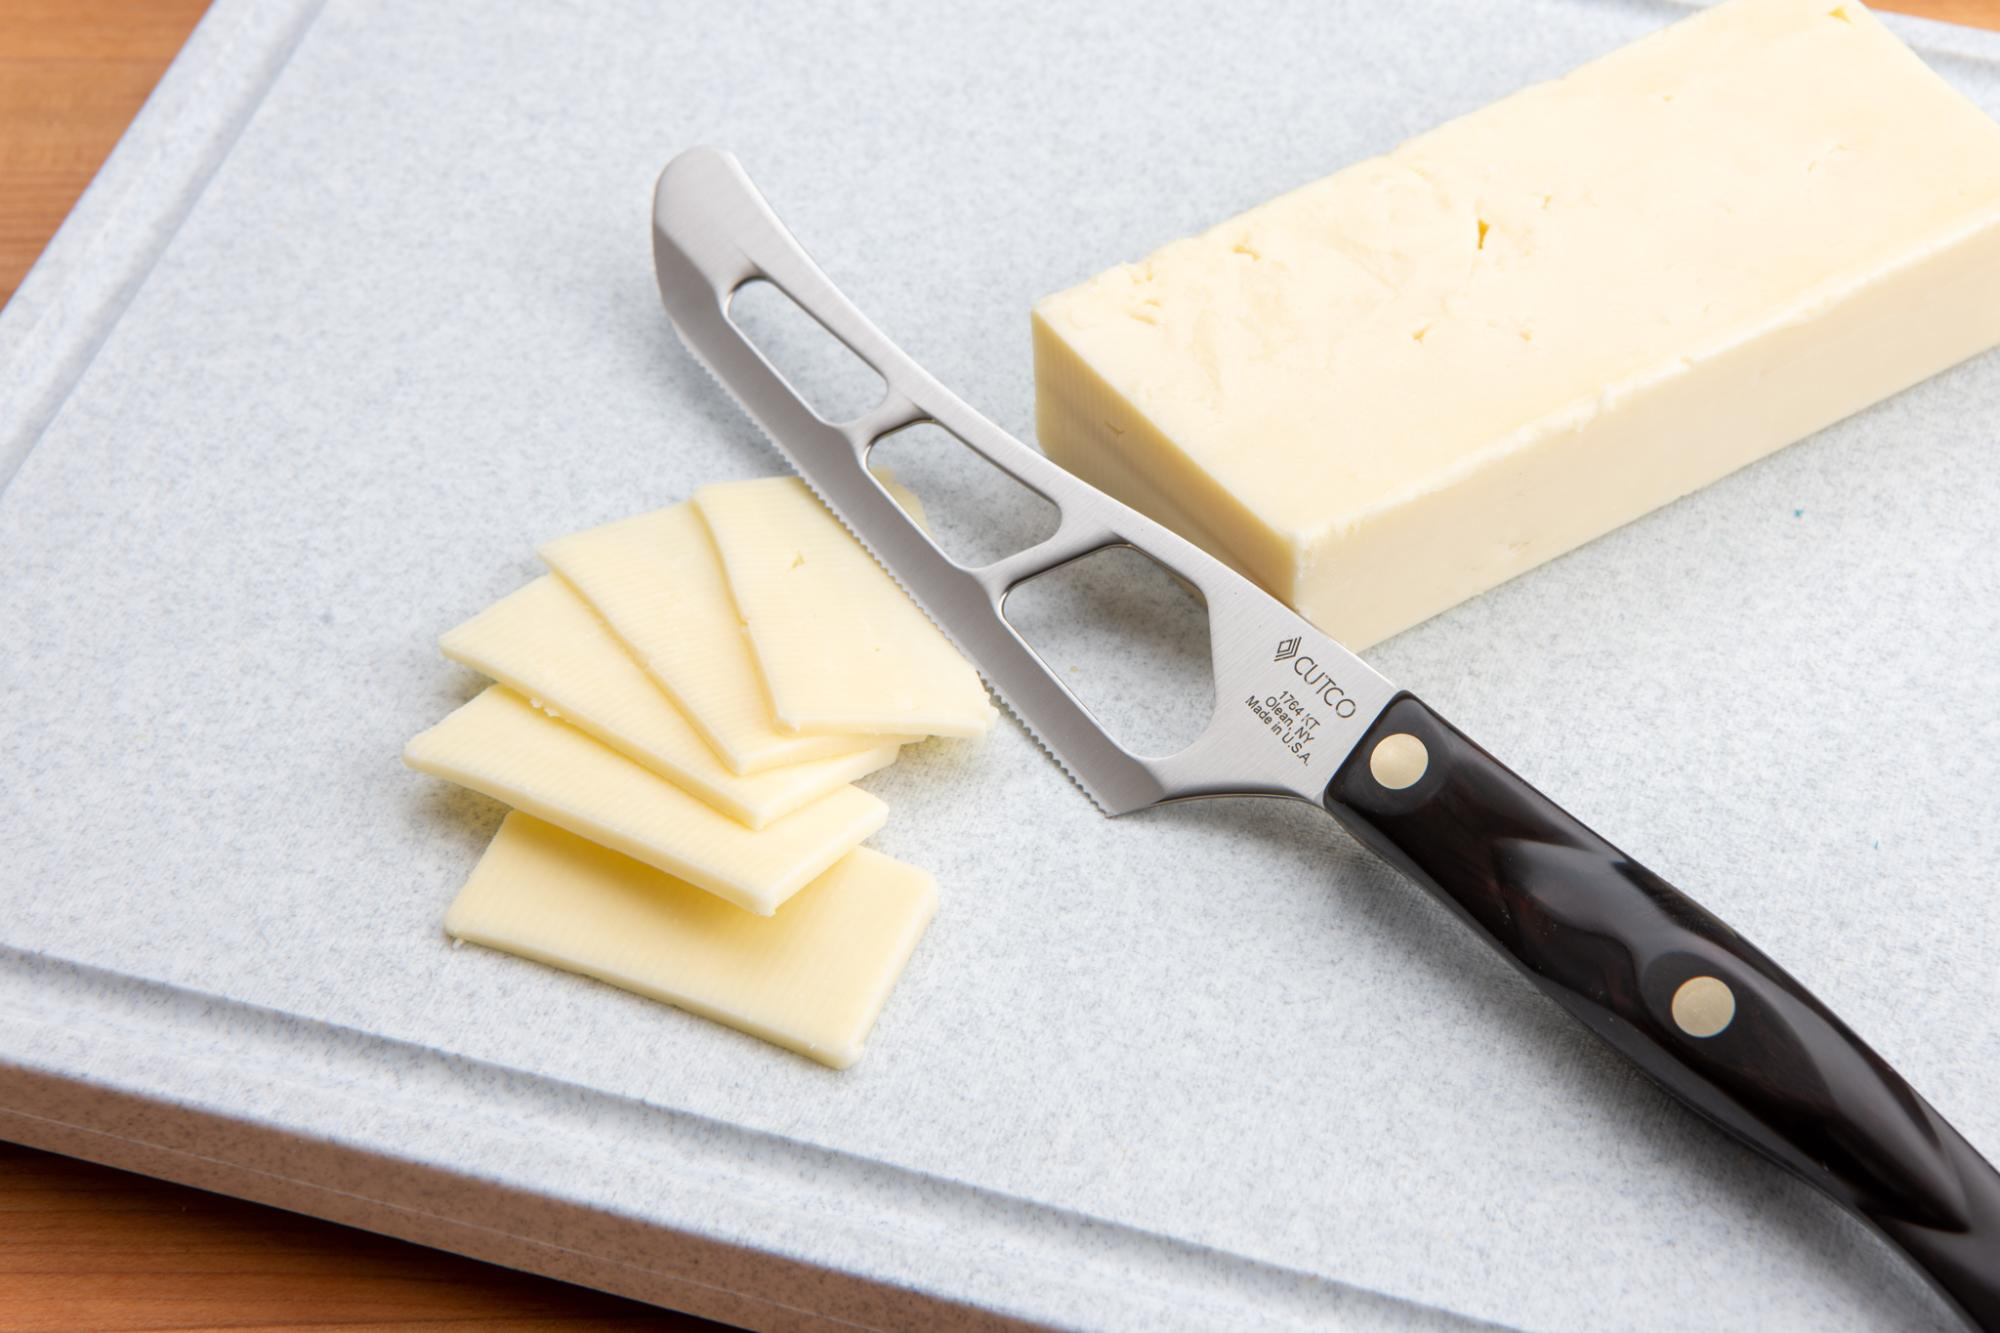 The Traditional Cheese Knife is perfect for cutting cheese into thin slices.